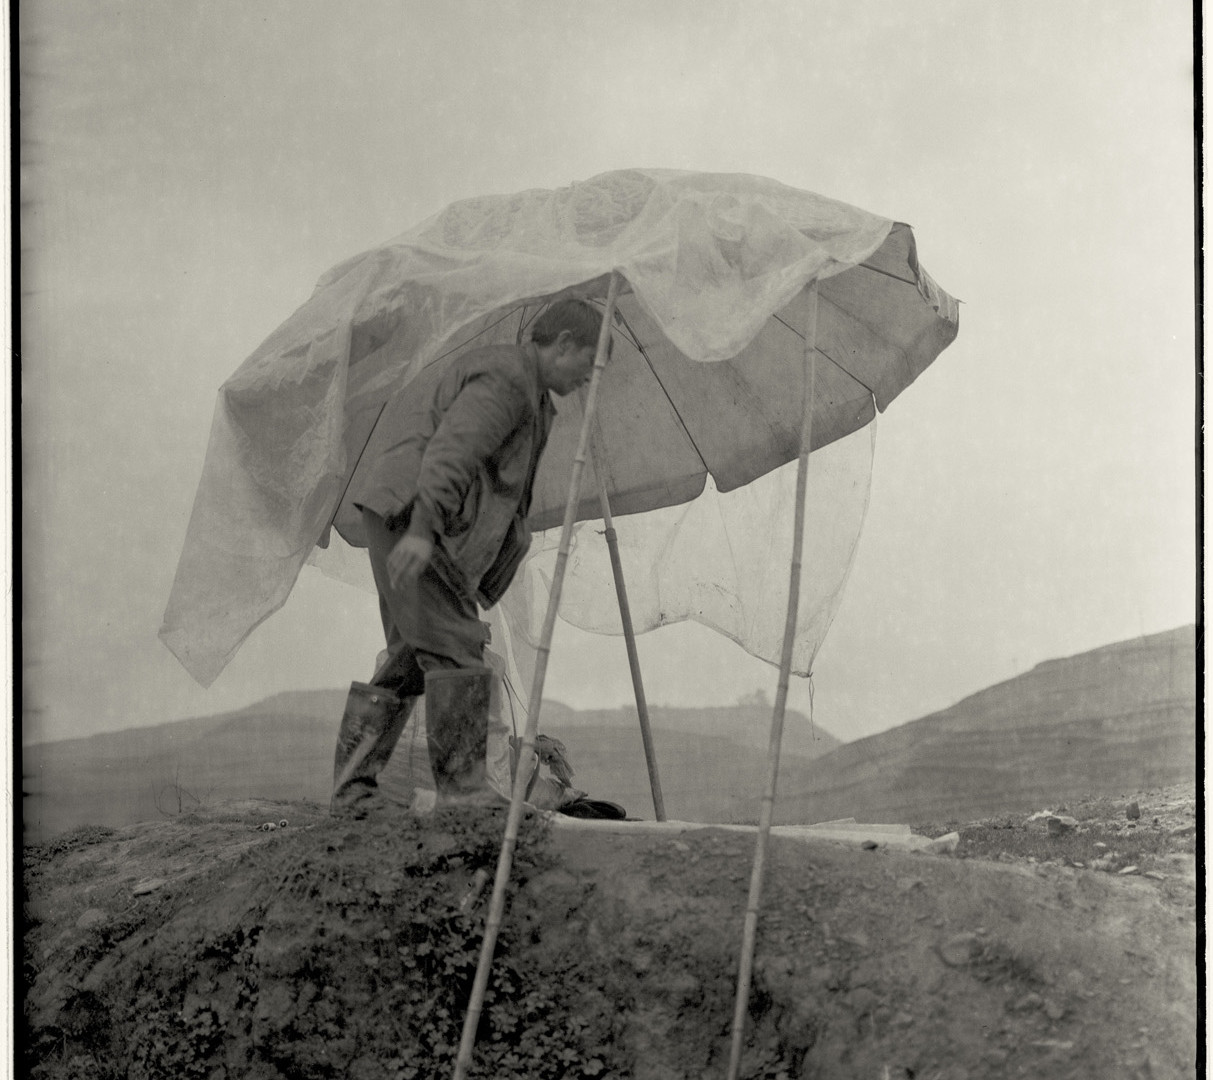 Adou, Umbrella and Man, 2006